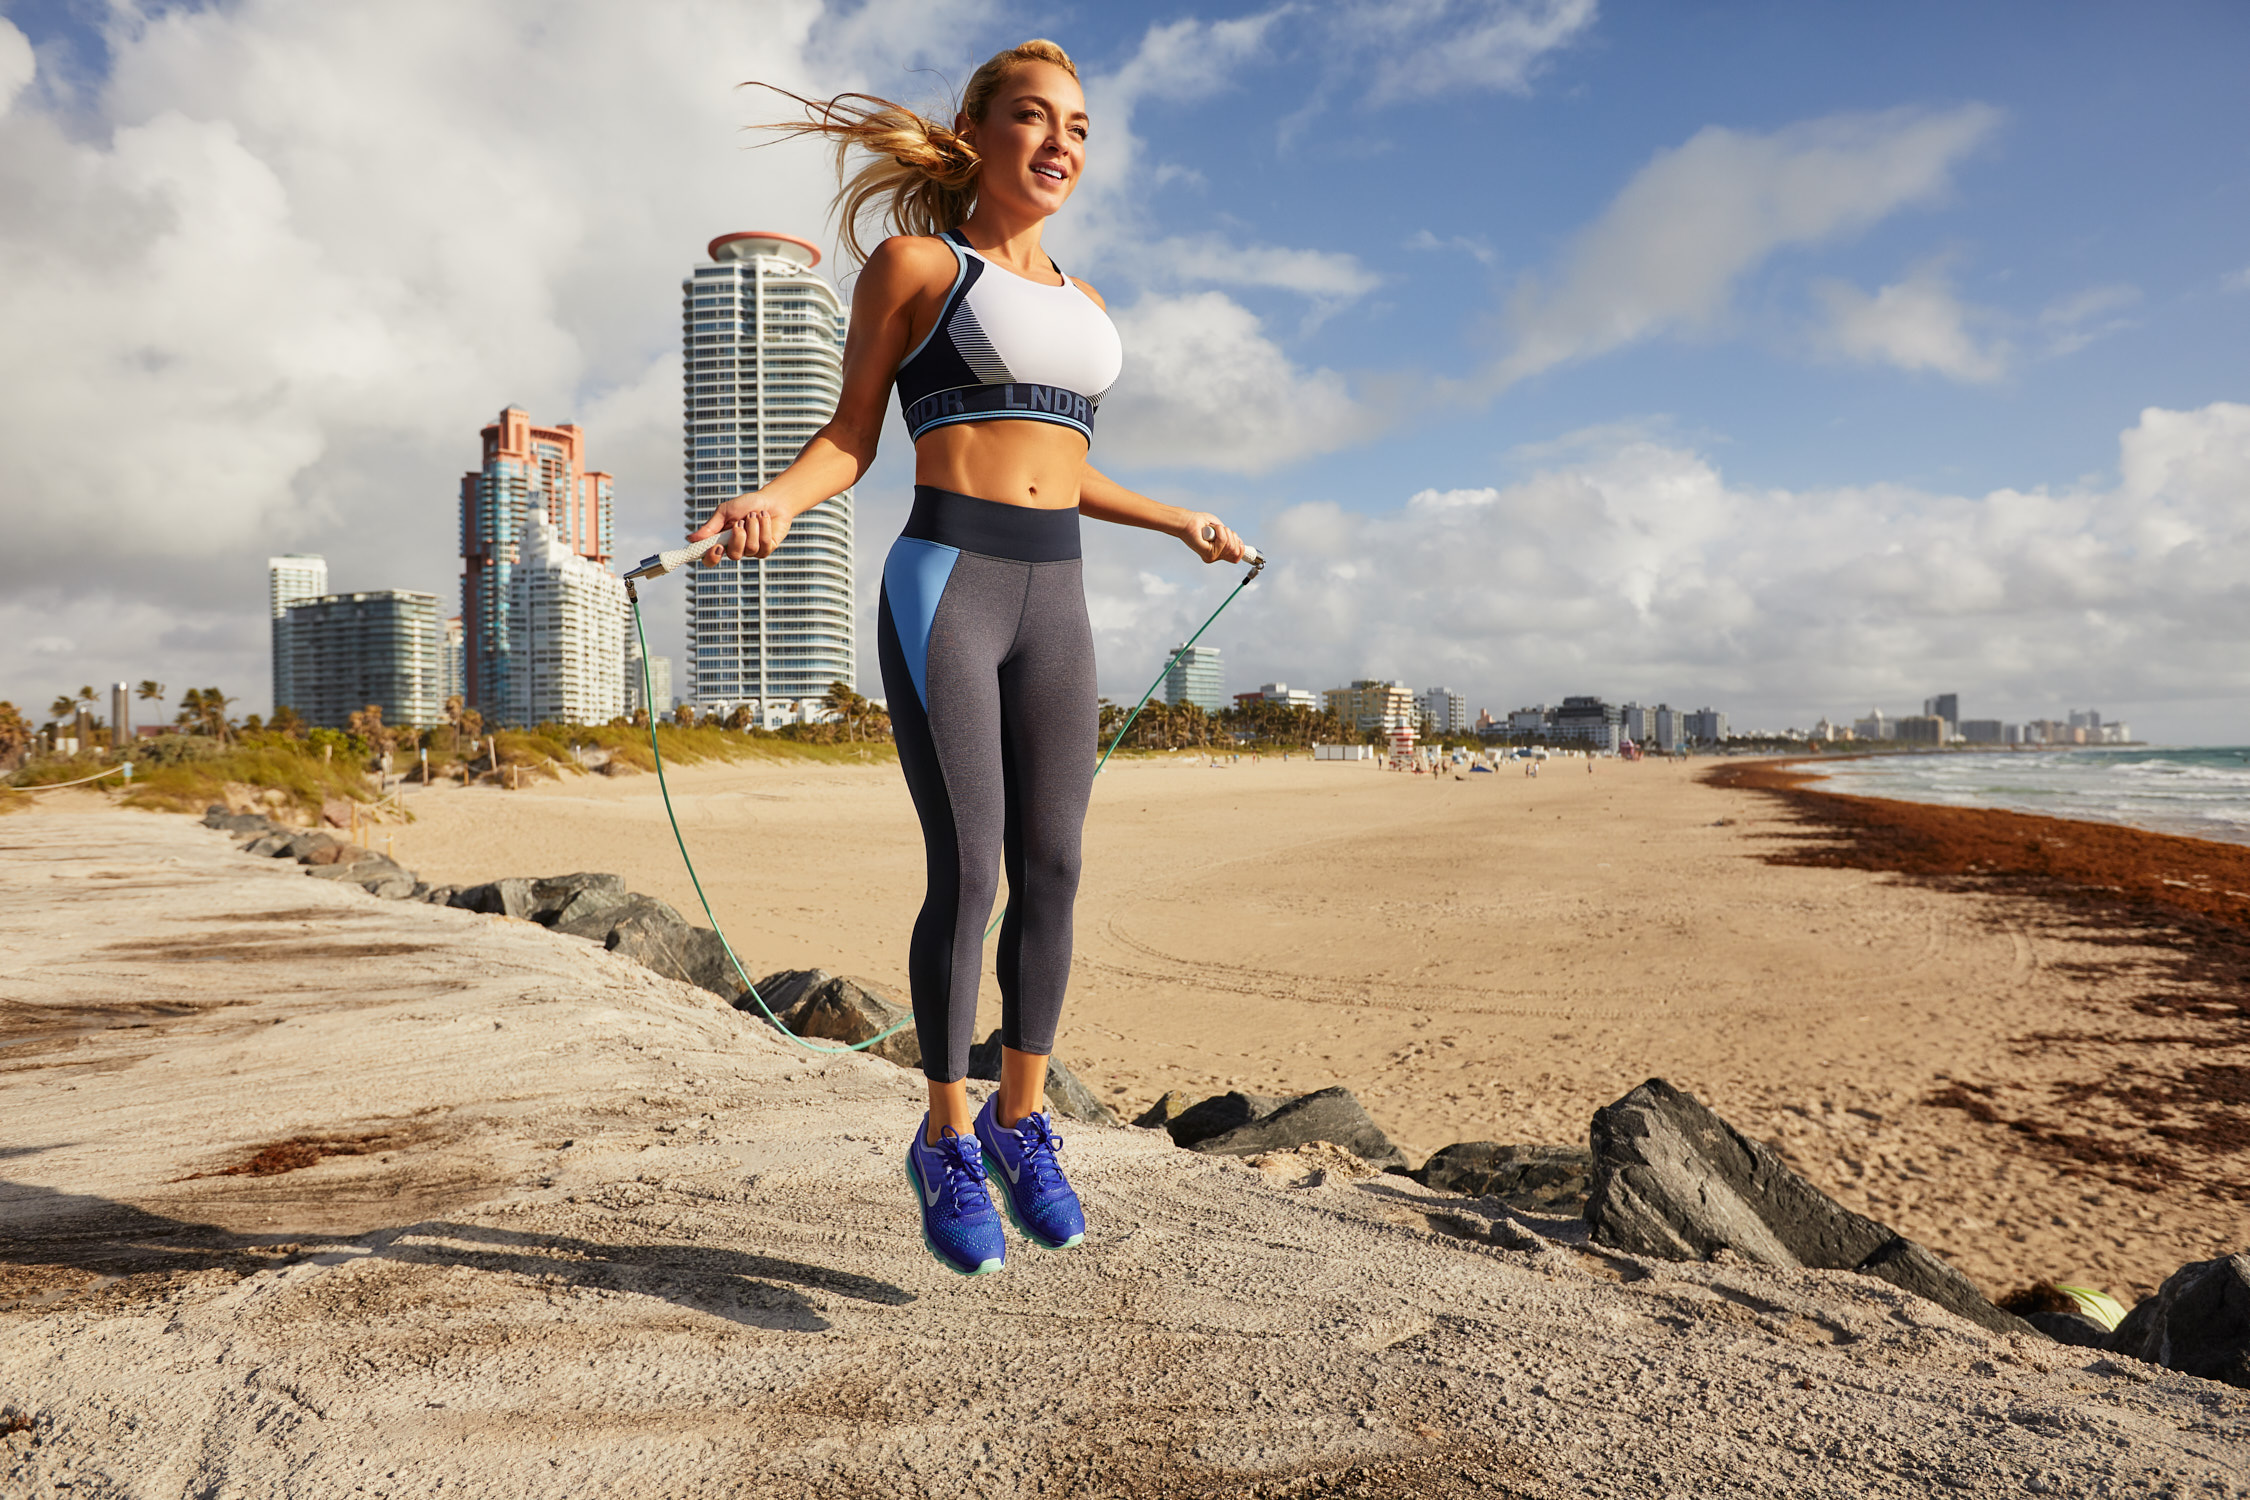 WOMEN'S HEALTH Magazine UK - September 2018 issue, The jump rope has become one of the official go-to sculpting toys of fitness queens Adriana Lima, Kate Hudson & Khloe Kardashian